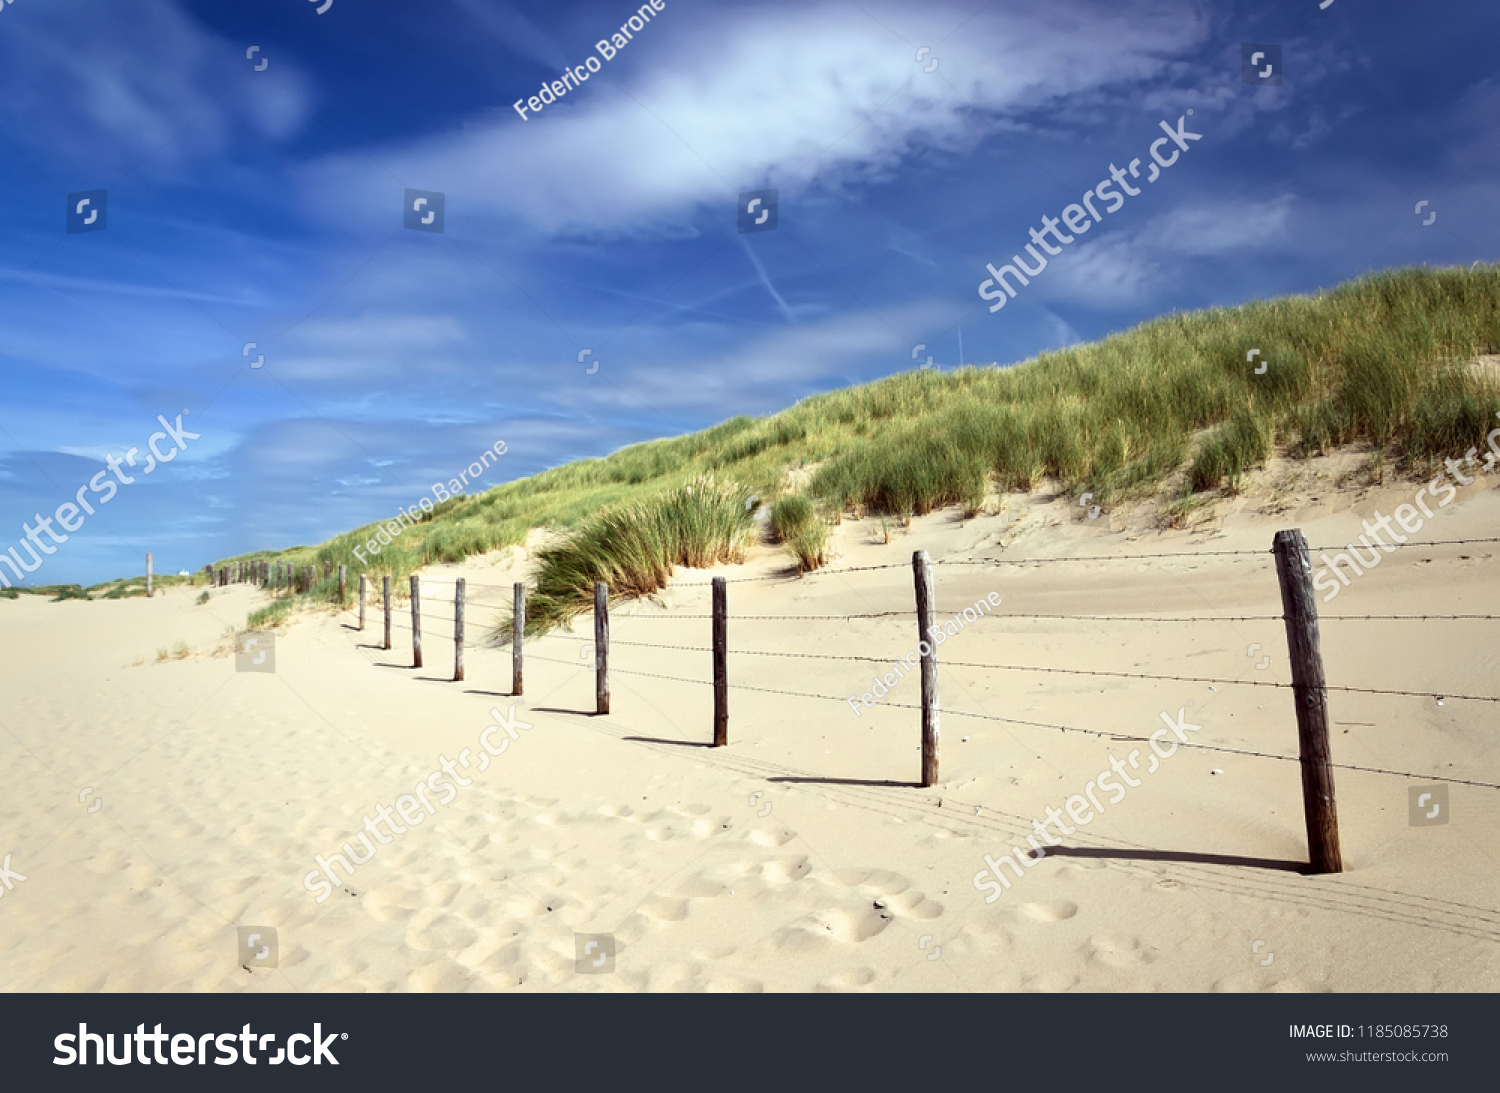 stock-photo-fence-on-the-beach-wonderful